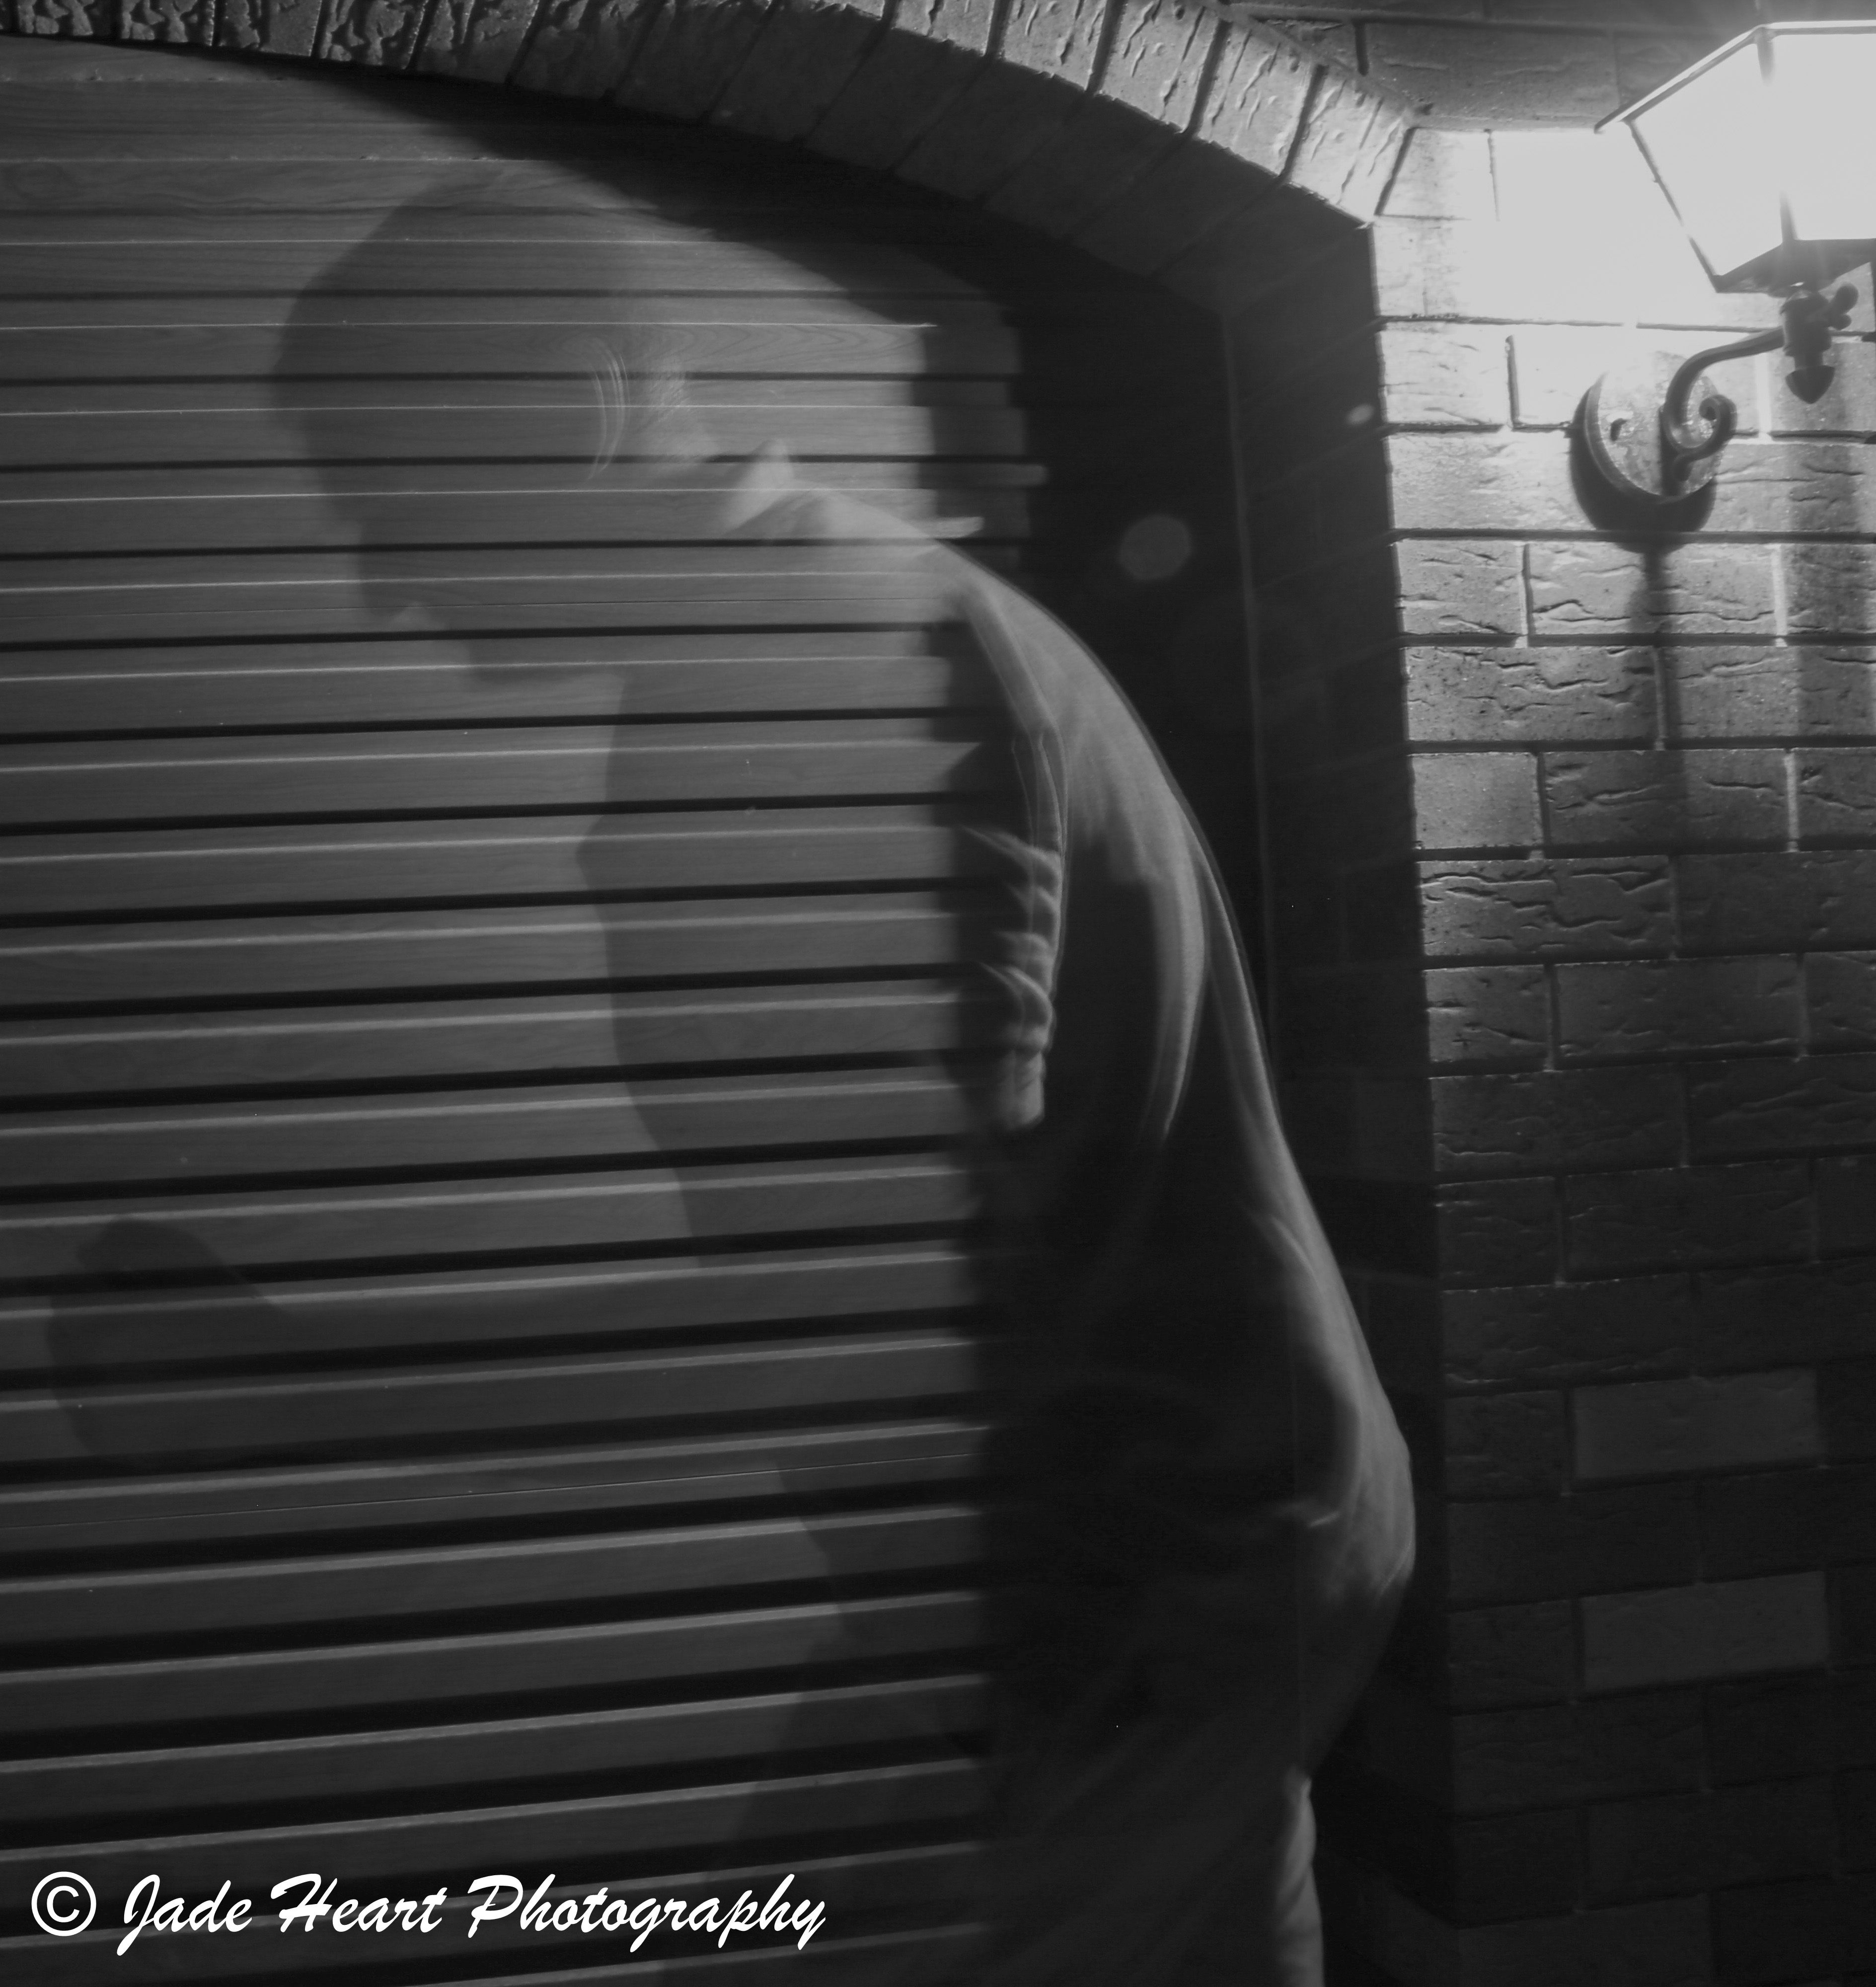 L4M2AS3 -Part A: Night Lights: Ghost Photography - M Mode - Canon EOS 80D - Shutter Speed  10.7 sec - ISO 100 - Aperture f/10 - Exposure Bias 0 step - Focal length 16mm - Handheld - Playing with shadow and light outdoors to create a shadow ghost effect of the subject. This series is kept in black and white to remove the distraction of colours and focus on the ghost effect.